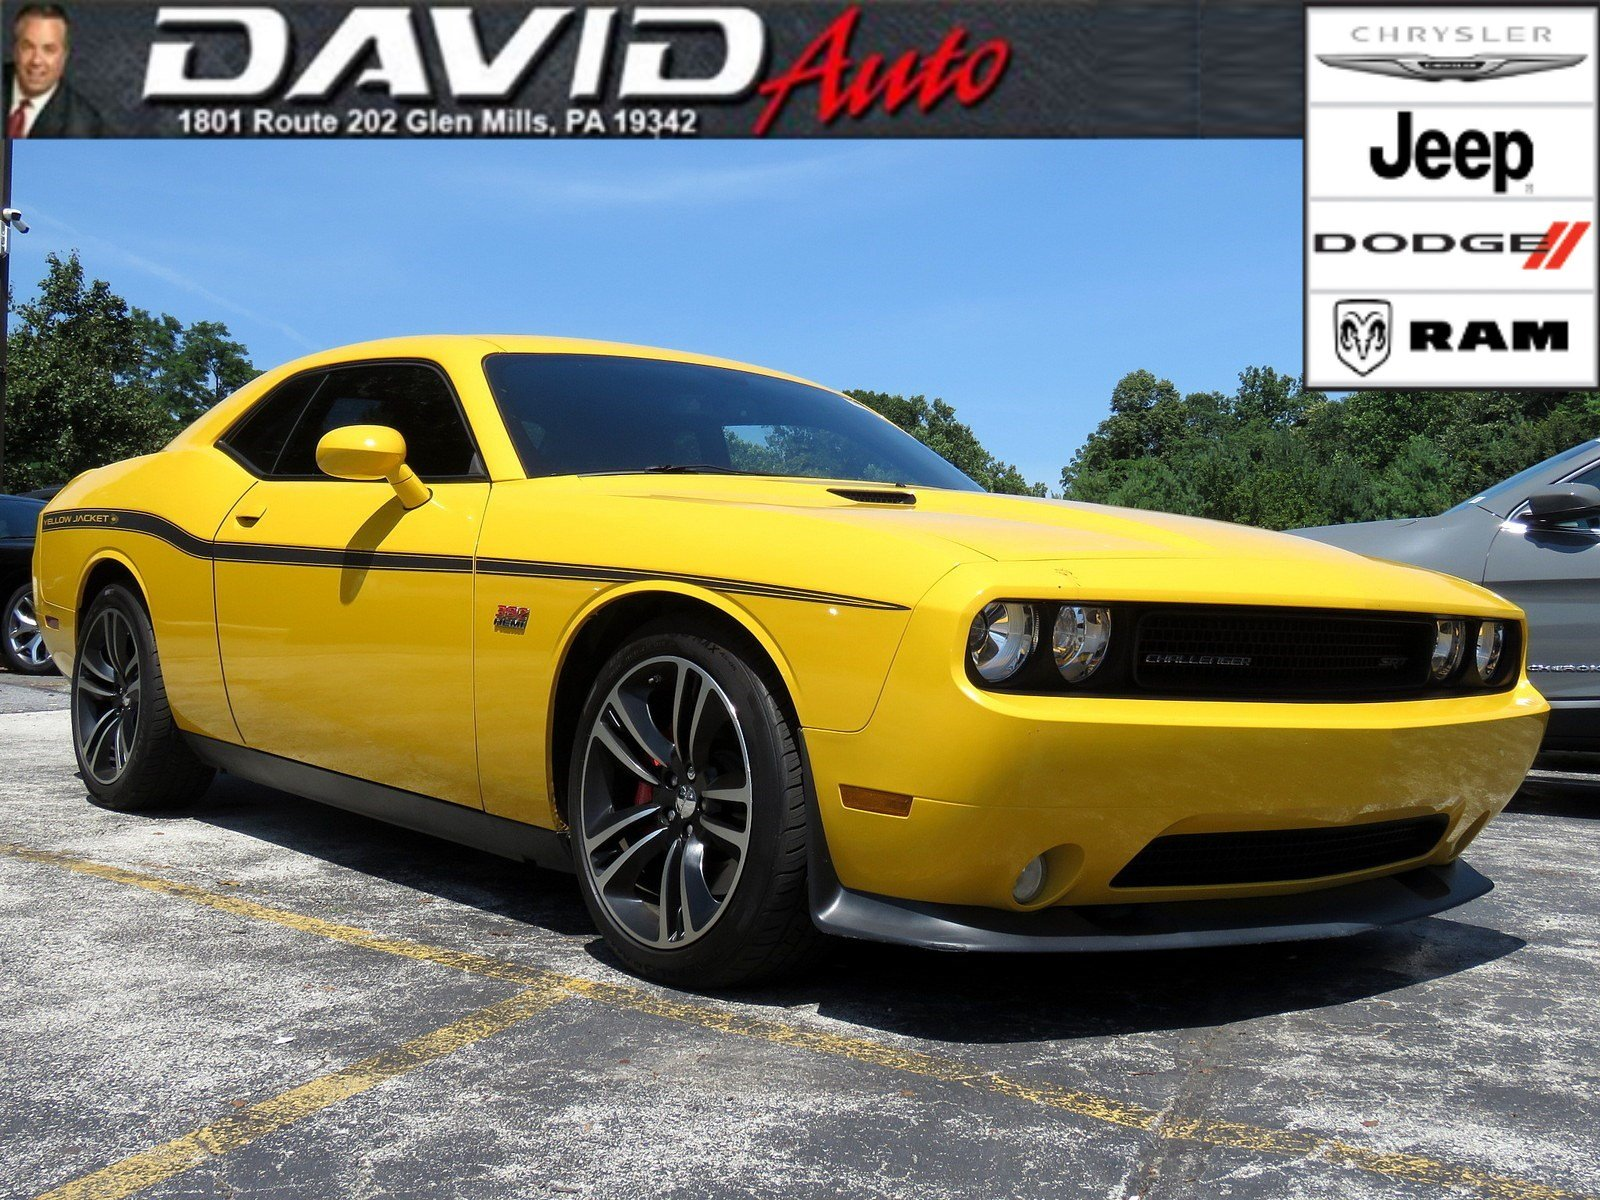 Pre Owned 2012 Dodge Challenger Yellow Jacket 2dr Car In Glen Mills